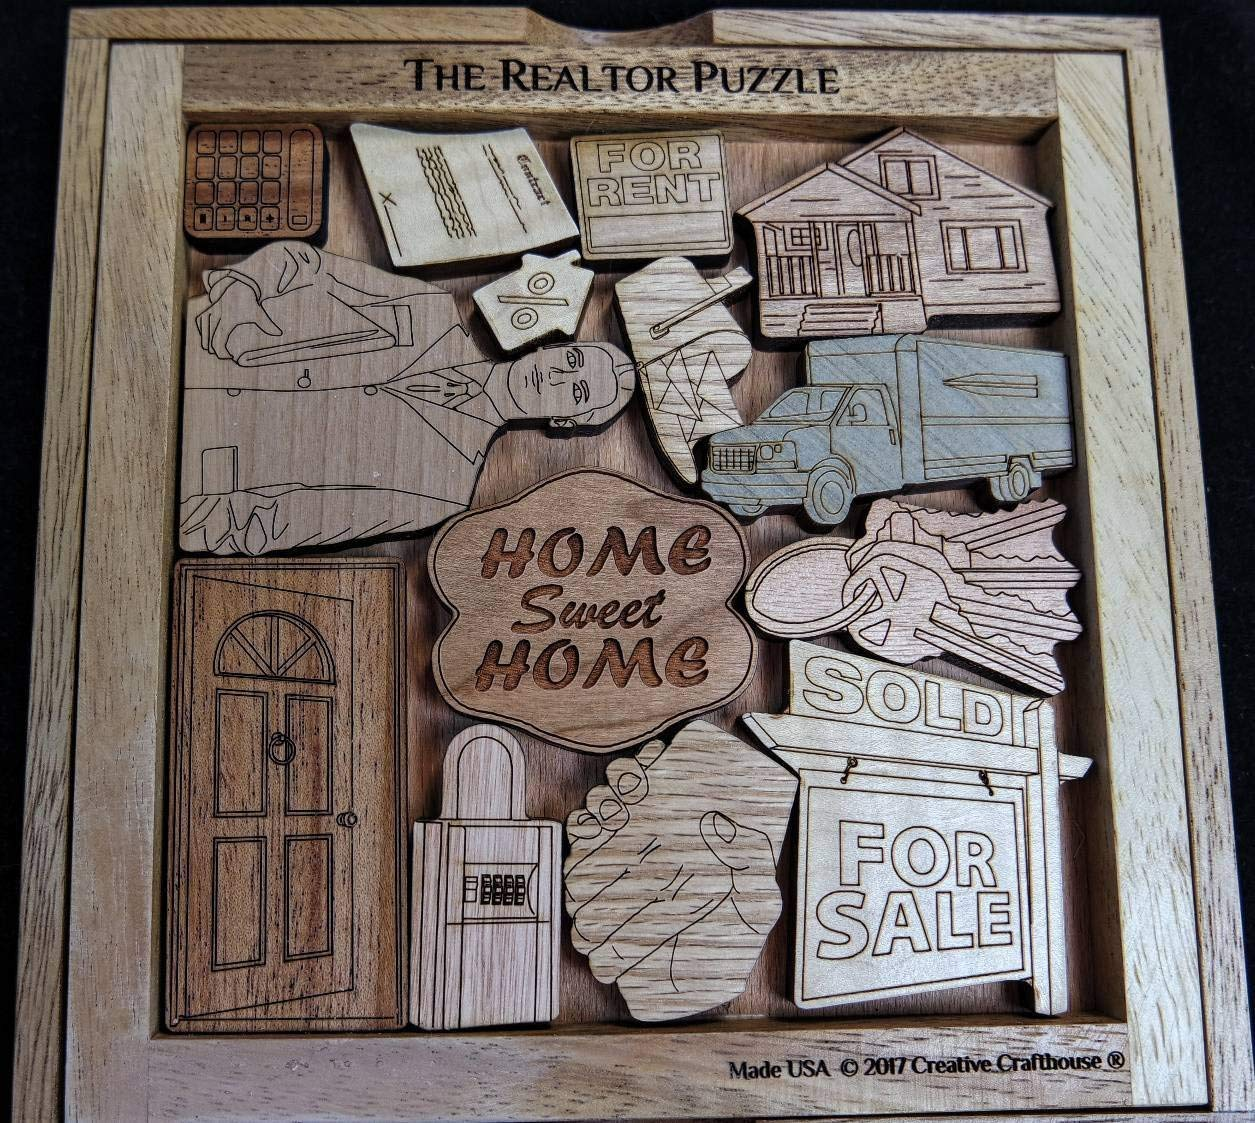 The Realtor Puzzle – A Real Estate Challenge